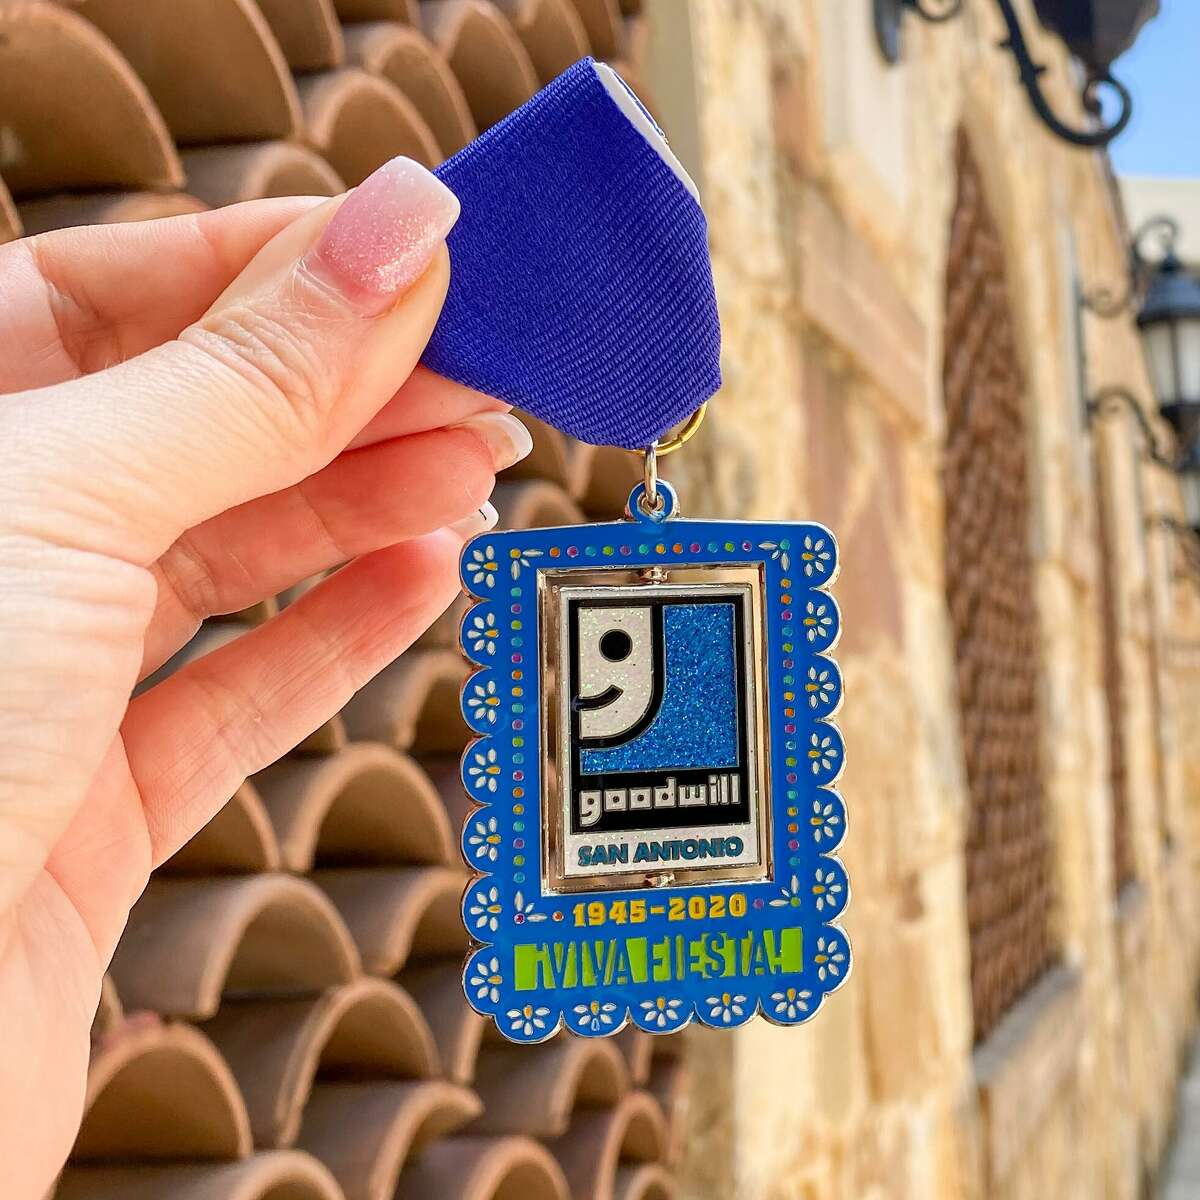 Goodwill San Antonio is offering Goodwill Fiesta medals to people who donate to the San Antonio Food Bank or visit select Goodwill locations to learn about their career and training programs.